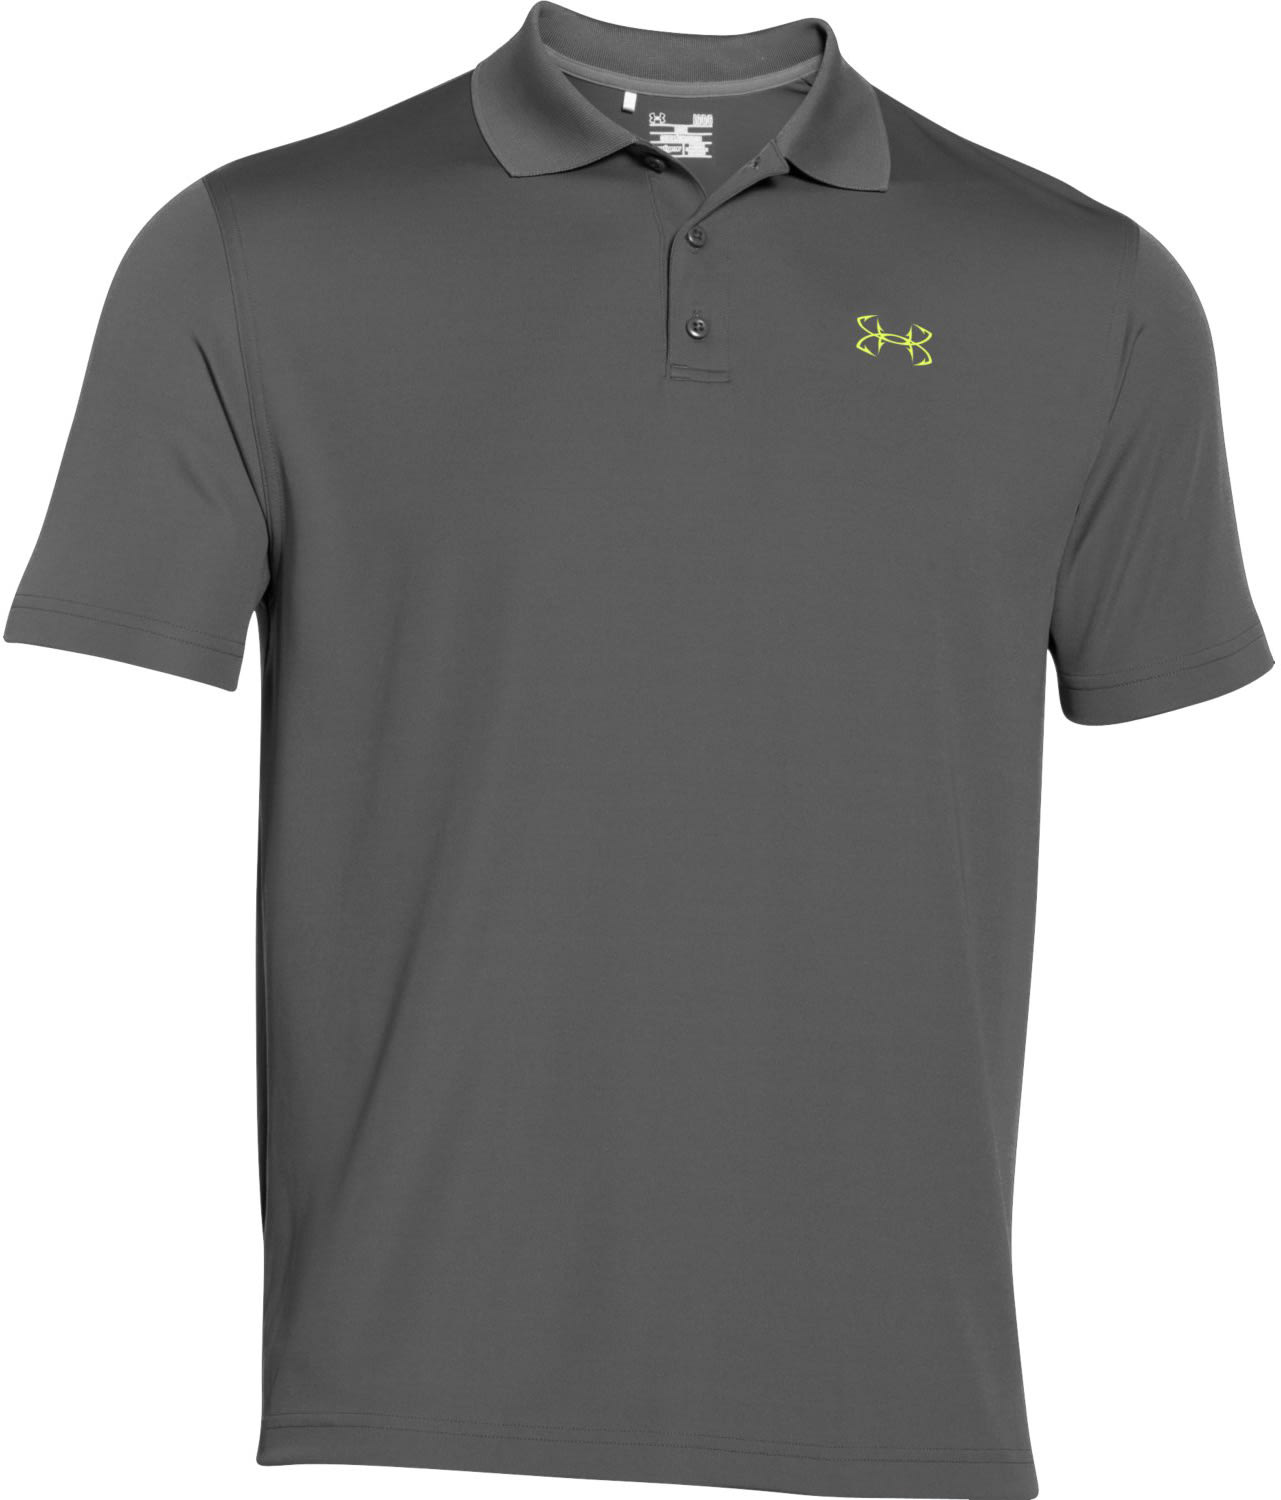 On sale under armour fish hook tech polo up to 45 off for Under armour fish hook